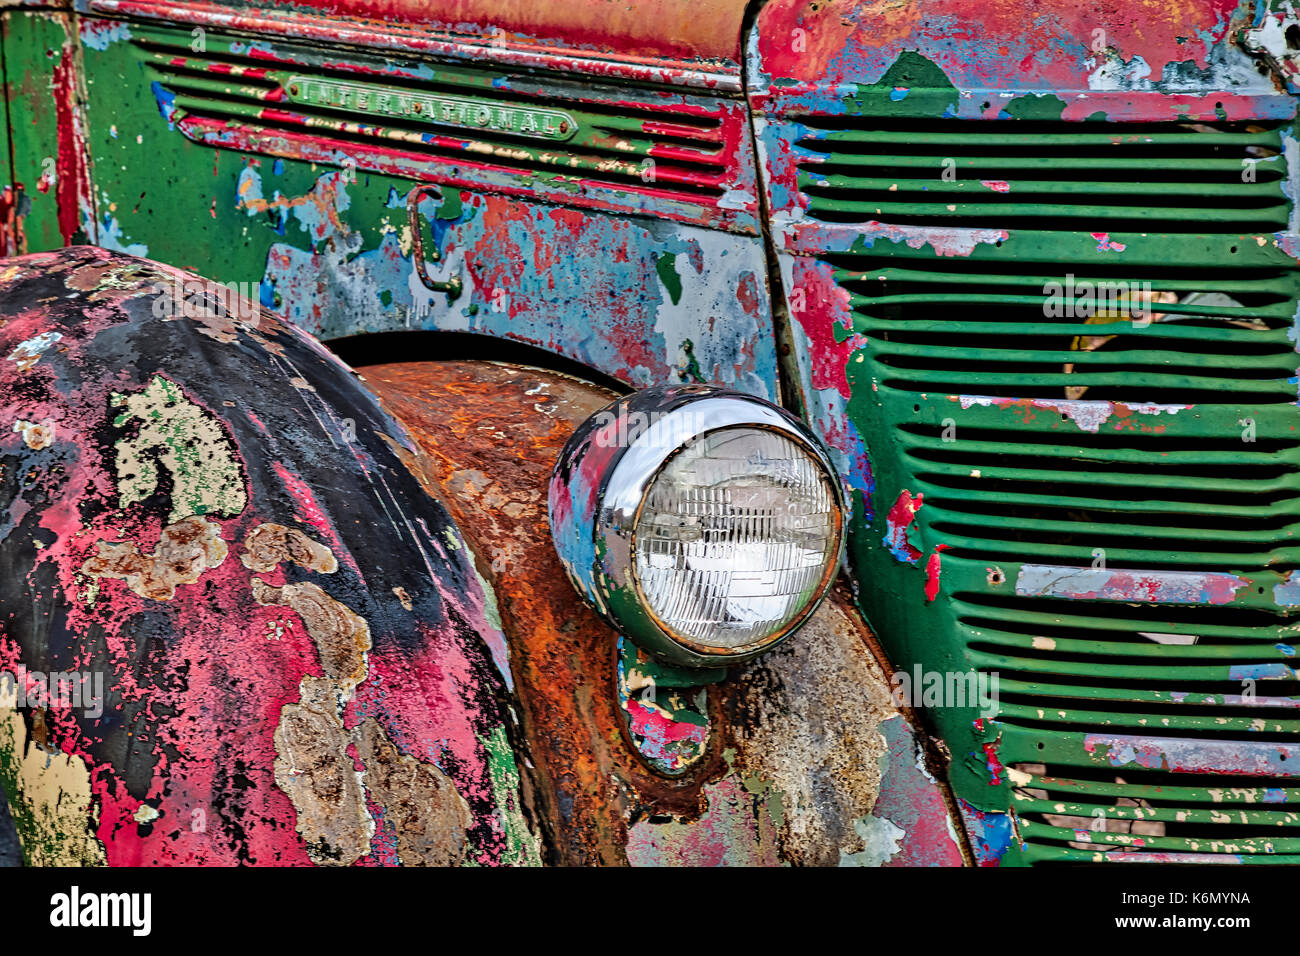 International Truck Details - Colorful rust and textures embody this vintage early 1900's abandoned truck in a Nevada Stock Photo